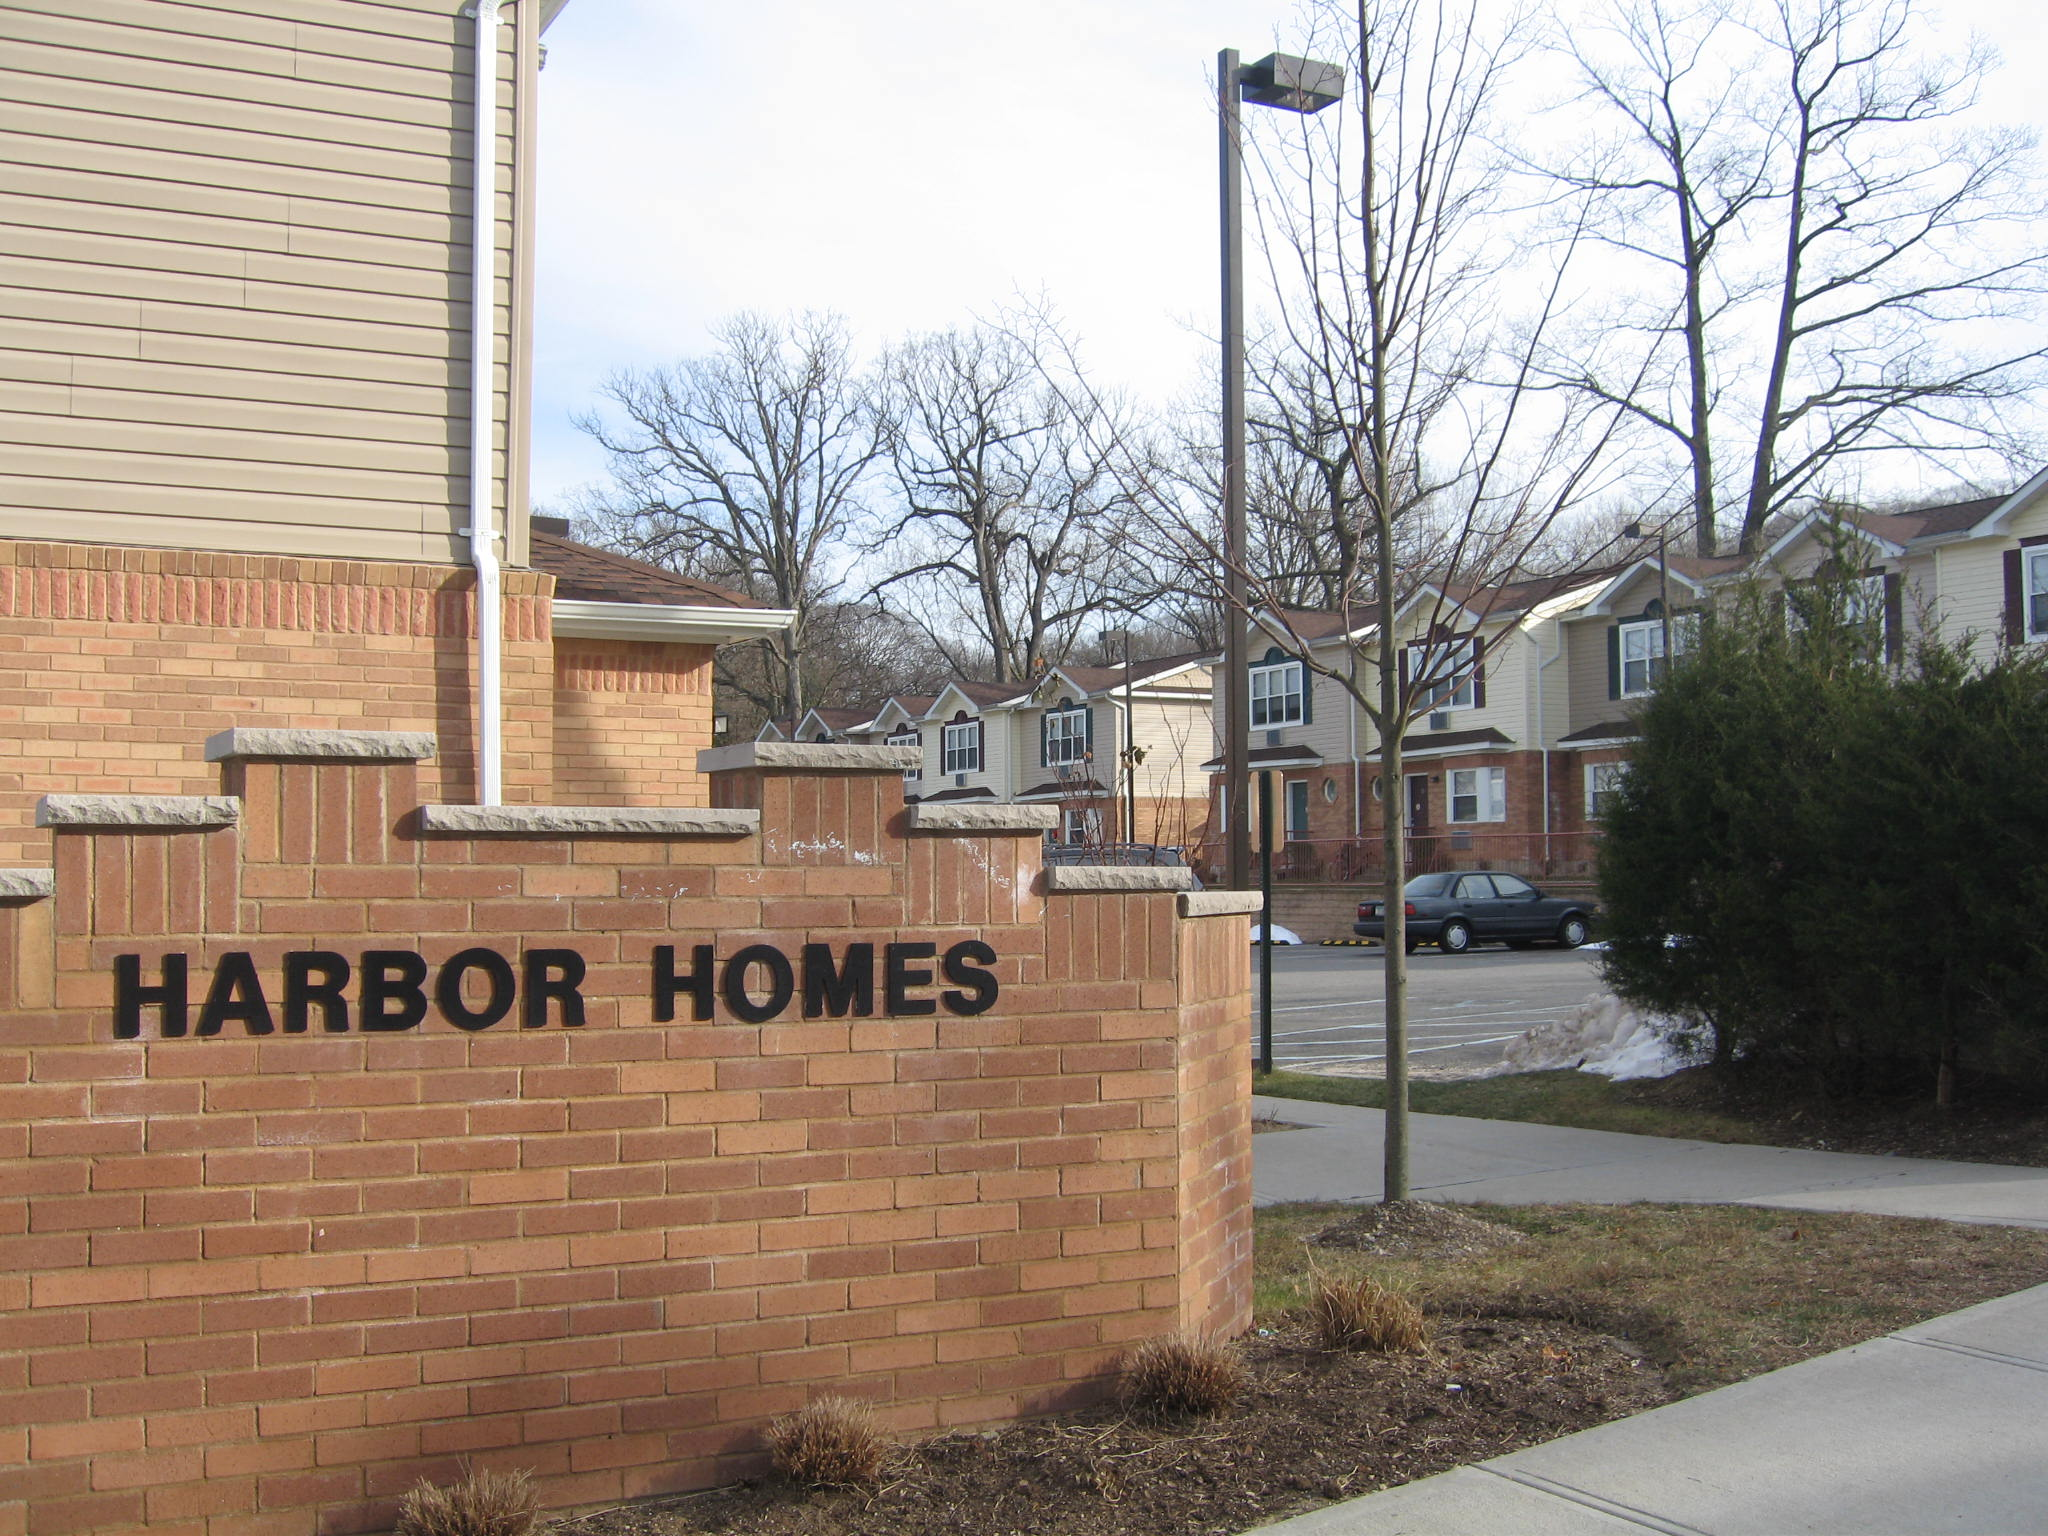 Residents Call for More Information on Proposed Senior Housing ... on river homes, coast homes, train depot homes, beach homes, ocean homes, oceanside homes, newport homes, shed homes,